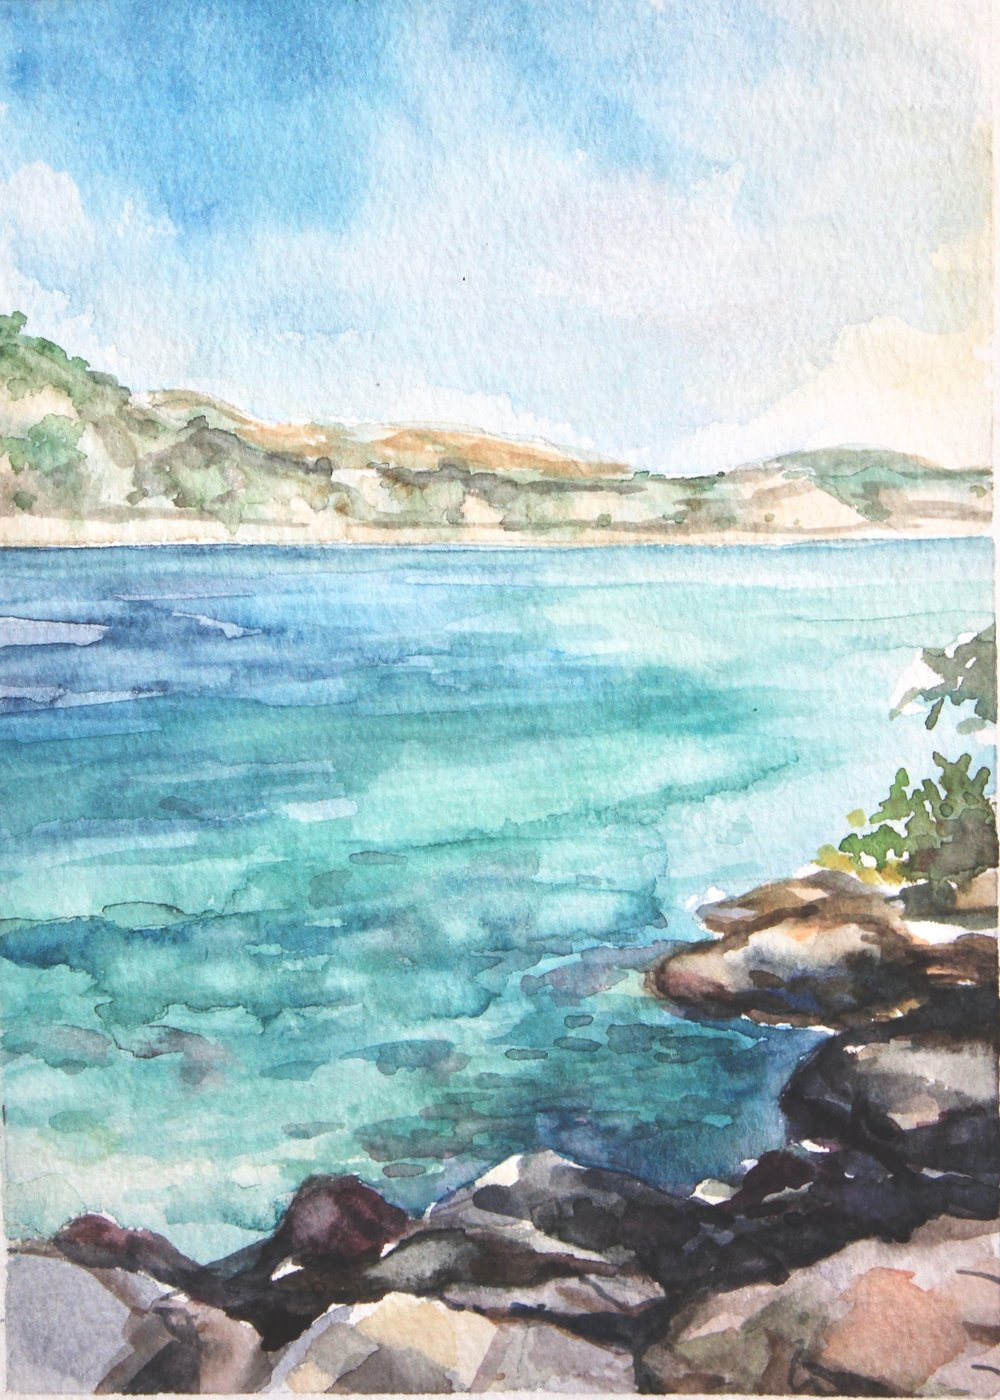 Island of Lokrum  5x7, watercolor. Available